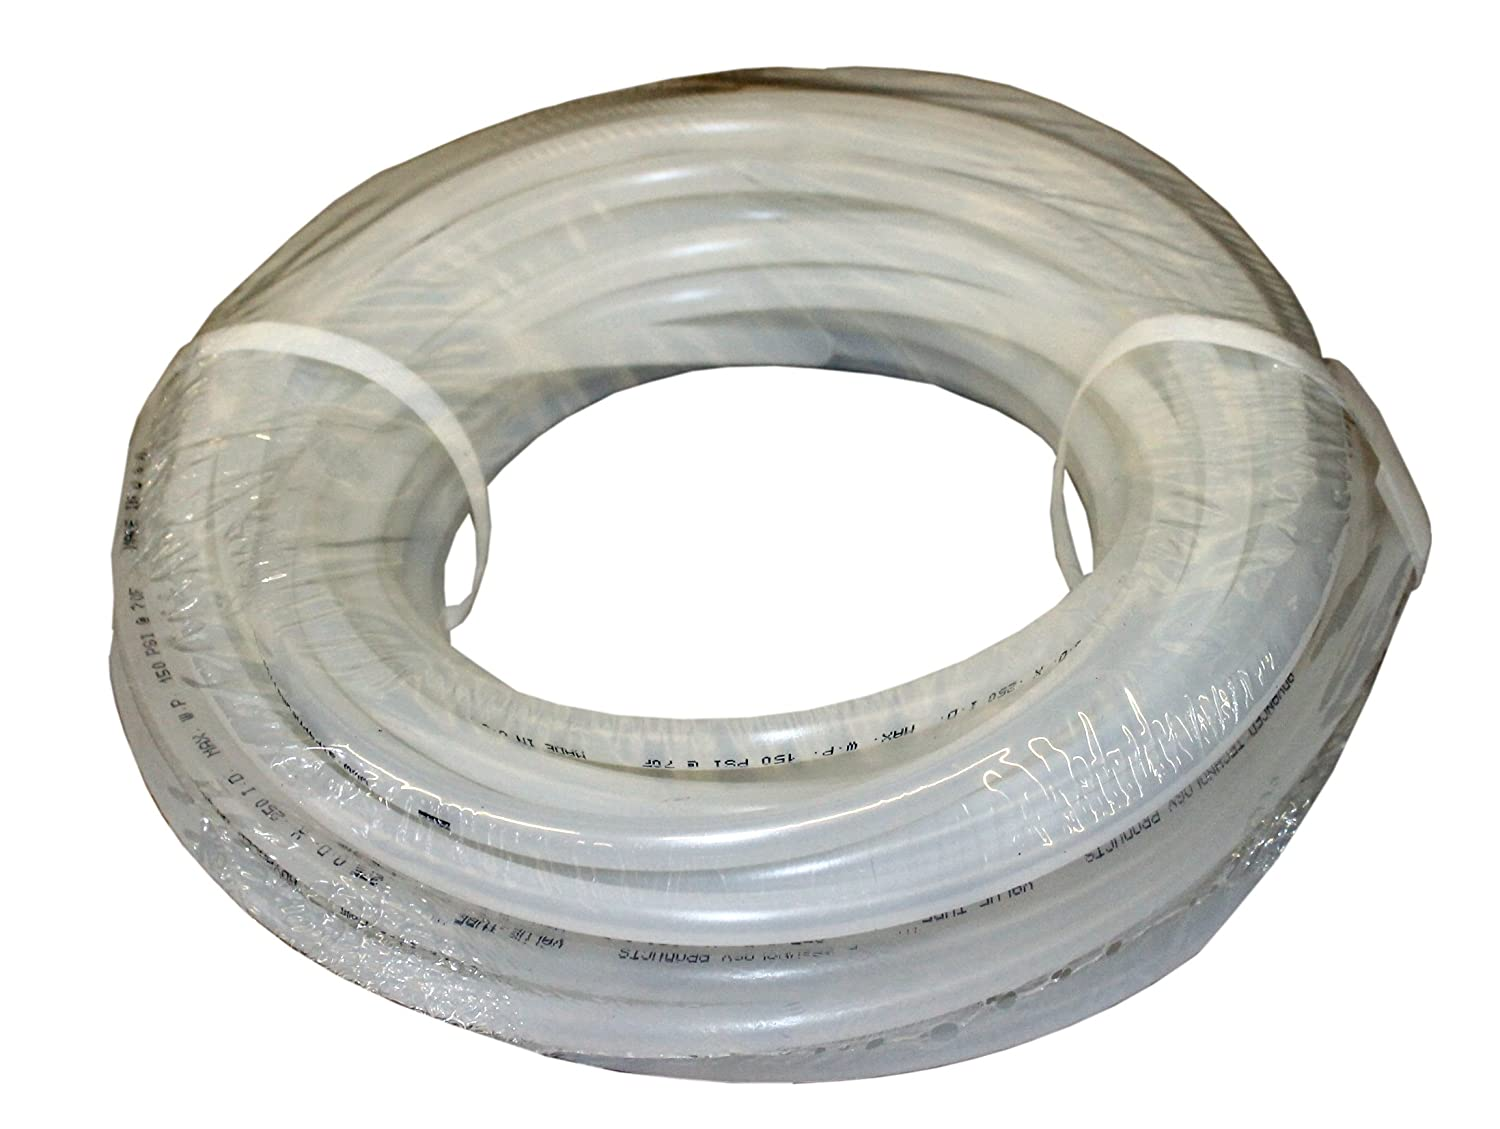 "ATP Value-Tube LDPE Plastic Tubing, Natural, 11/64"" ID x 1/4"" OD, 500 feet Length"